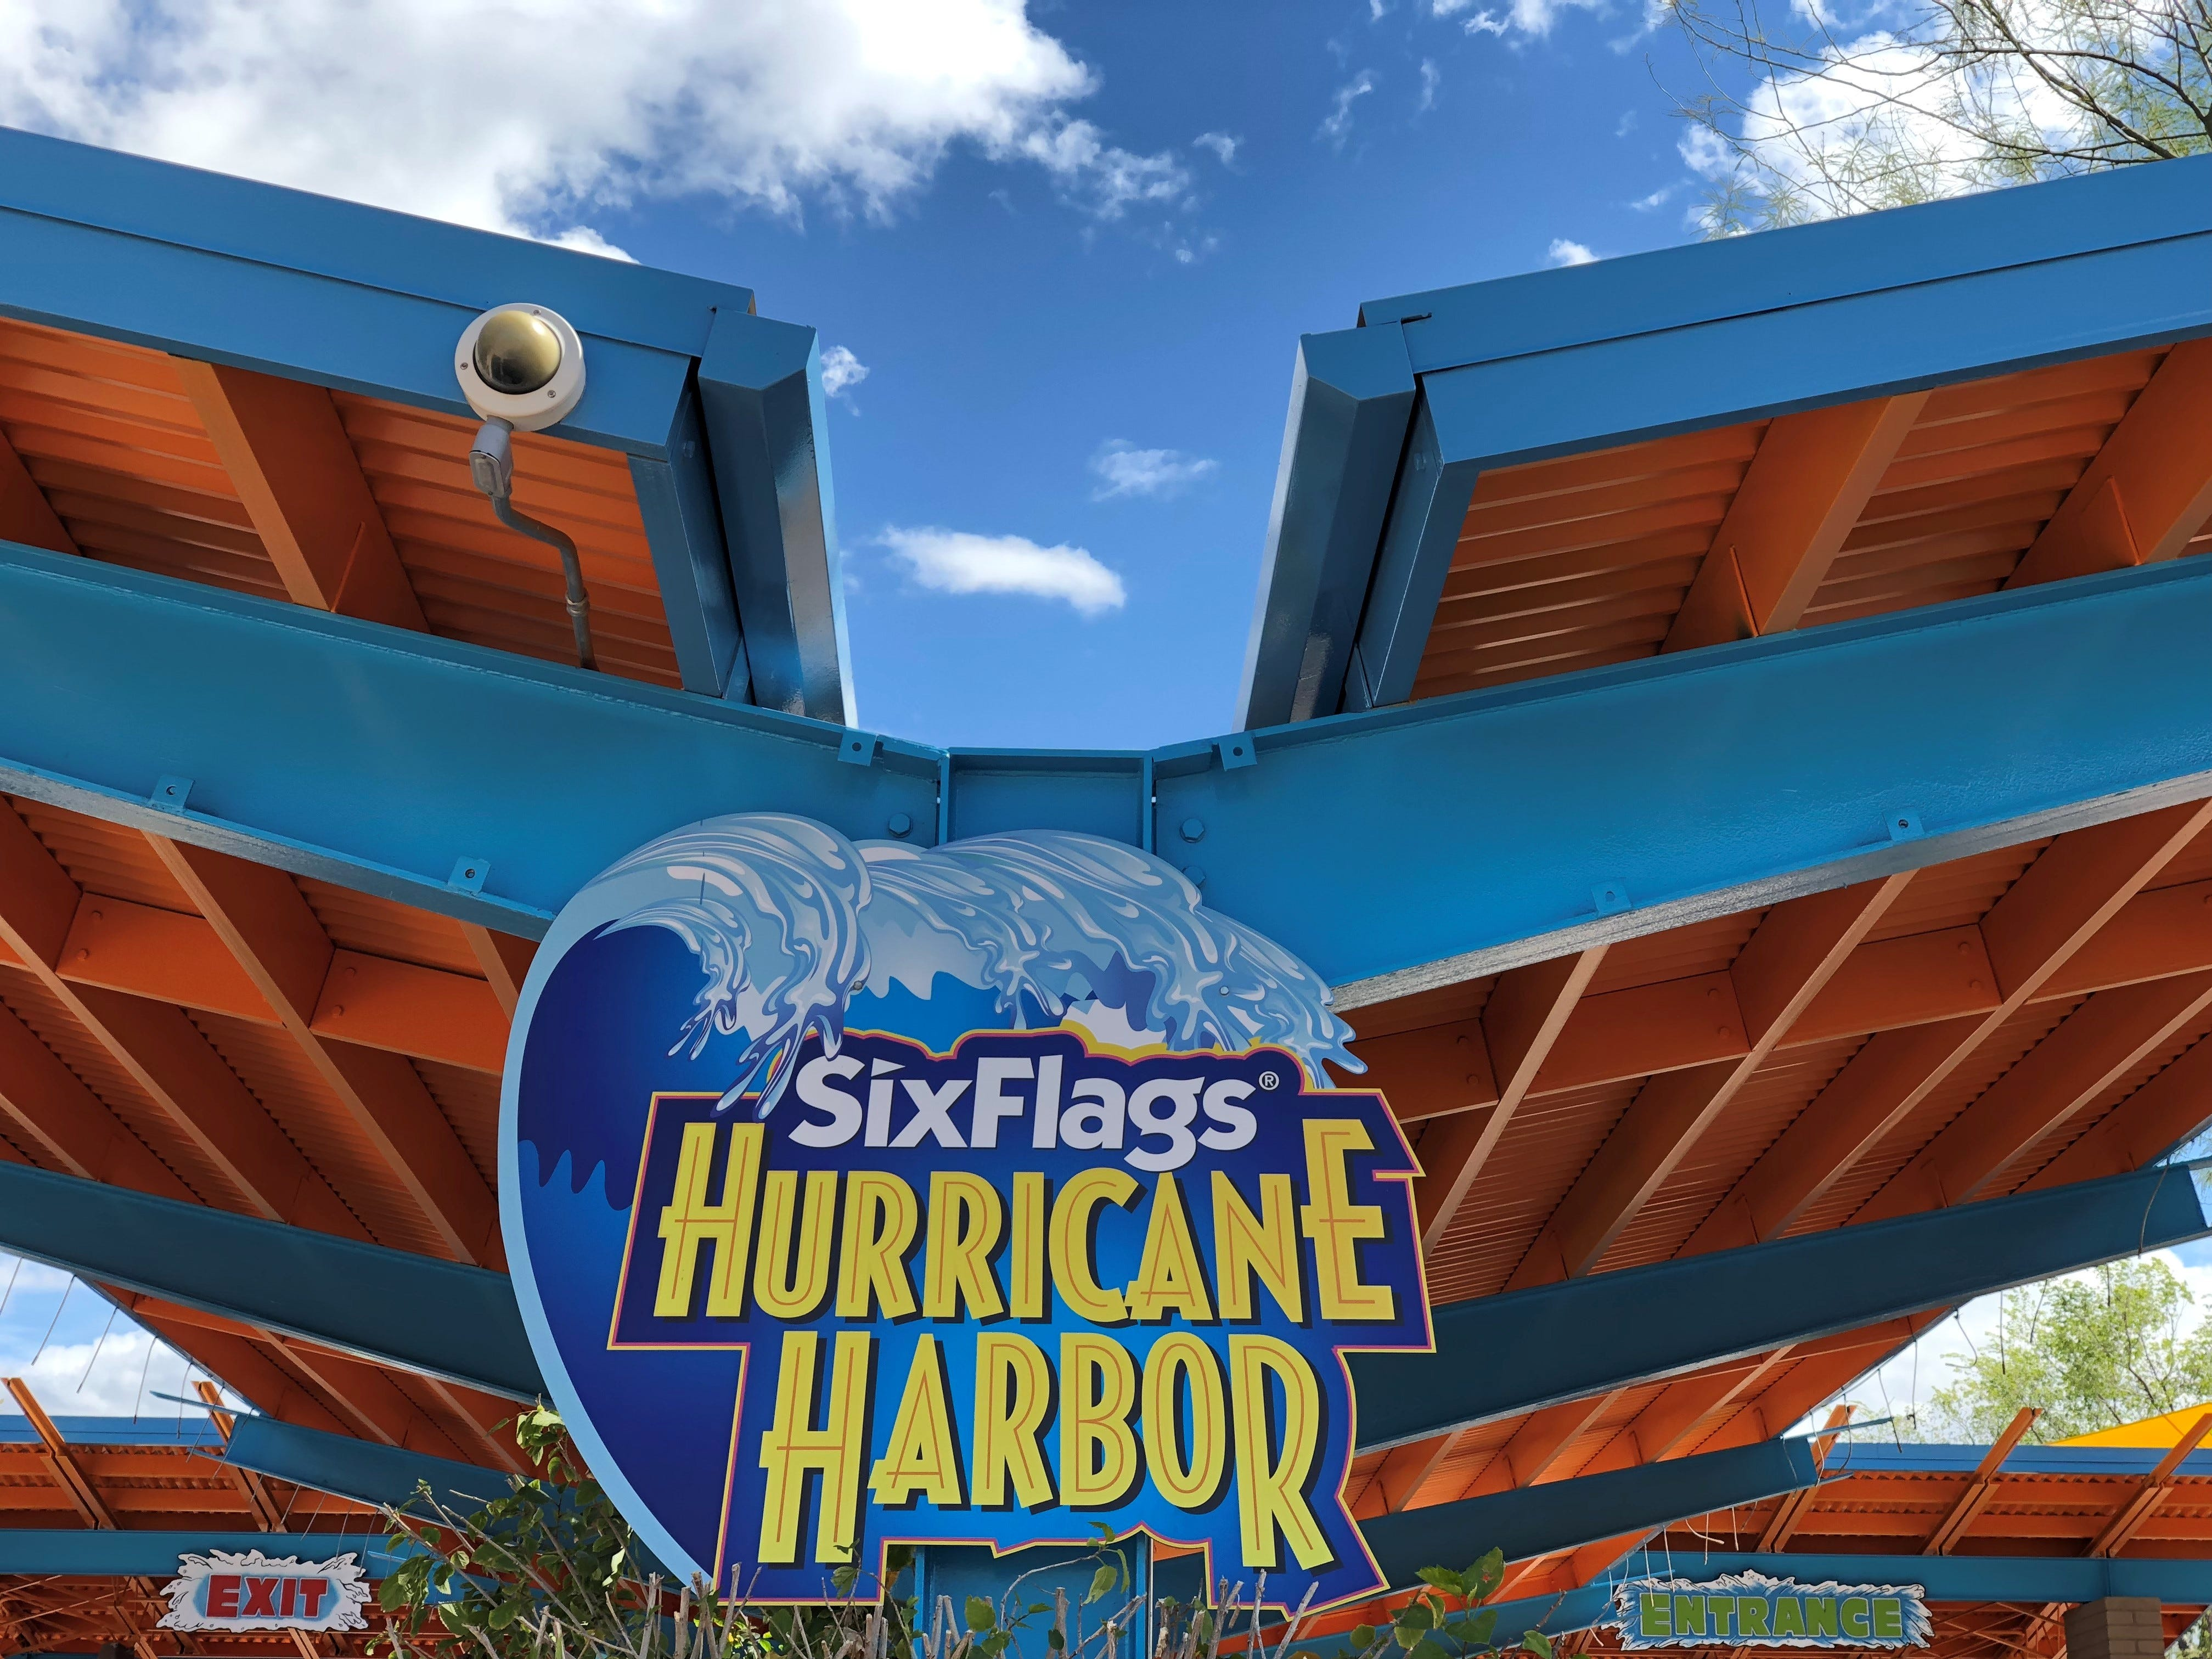 Six Flags Hurricane Harbor, formerly Wet 'n' Wild Phoenix, opens on March 16, 2019.